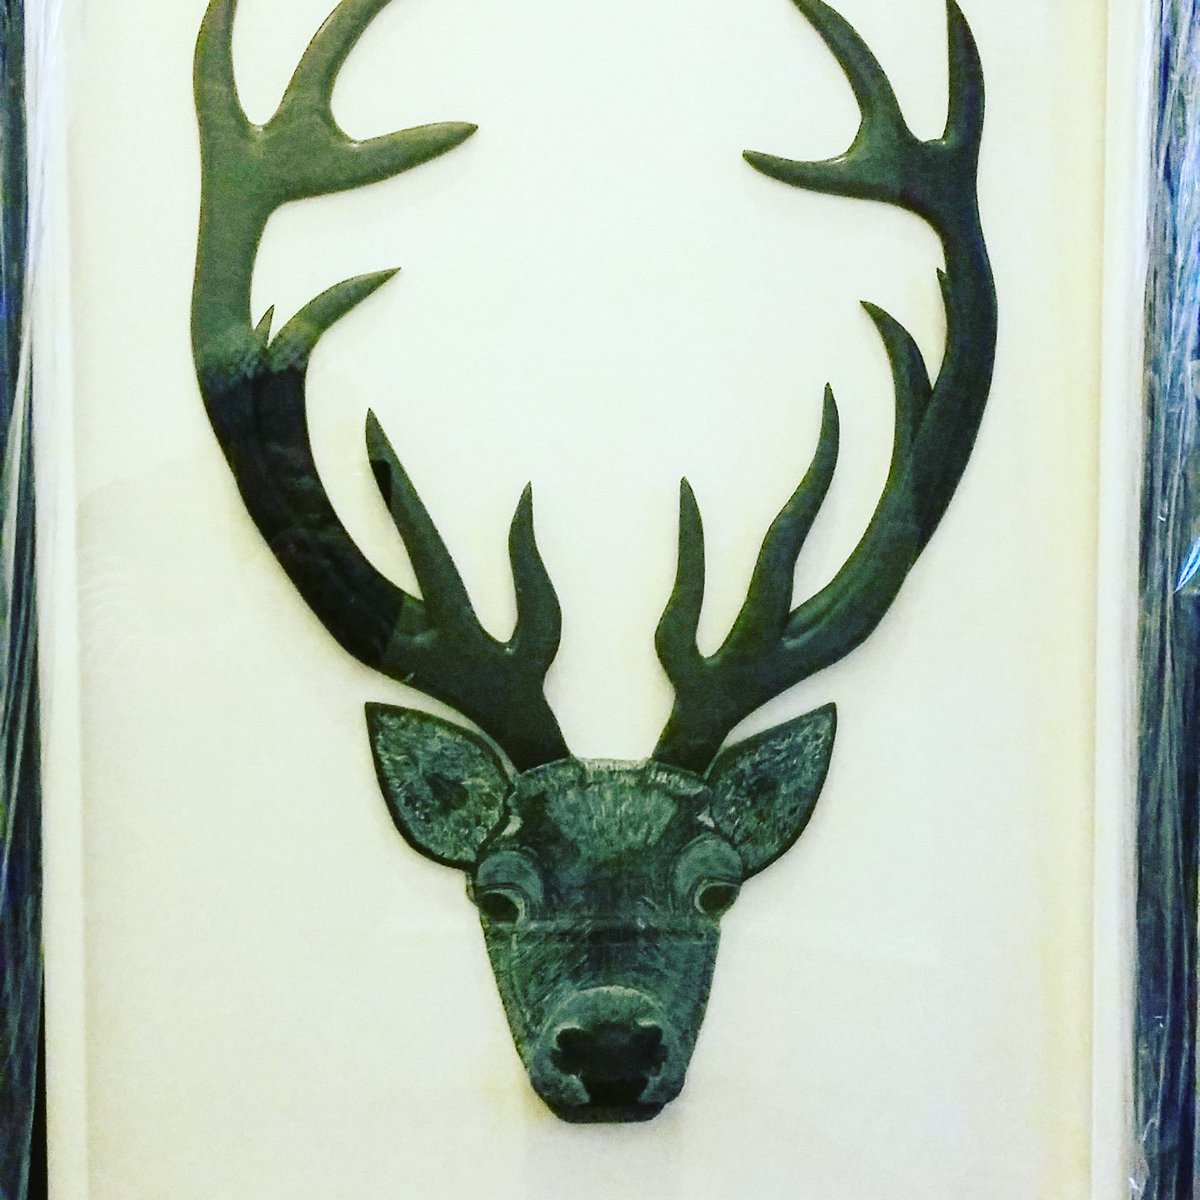 My deer! After two years of mentally giving shape to this wonderful work of art, finally Terry @LovingSlate has made it a reality! We love it! #ohdeer #artwithslate #talentedhands #talentedminds #creativepower @honisterdotcom @LiveShopLocal @LakeDistrictPR  @iamcountryside<br>http://pic.twitter.com/3gLtgNWunQ